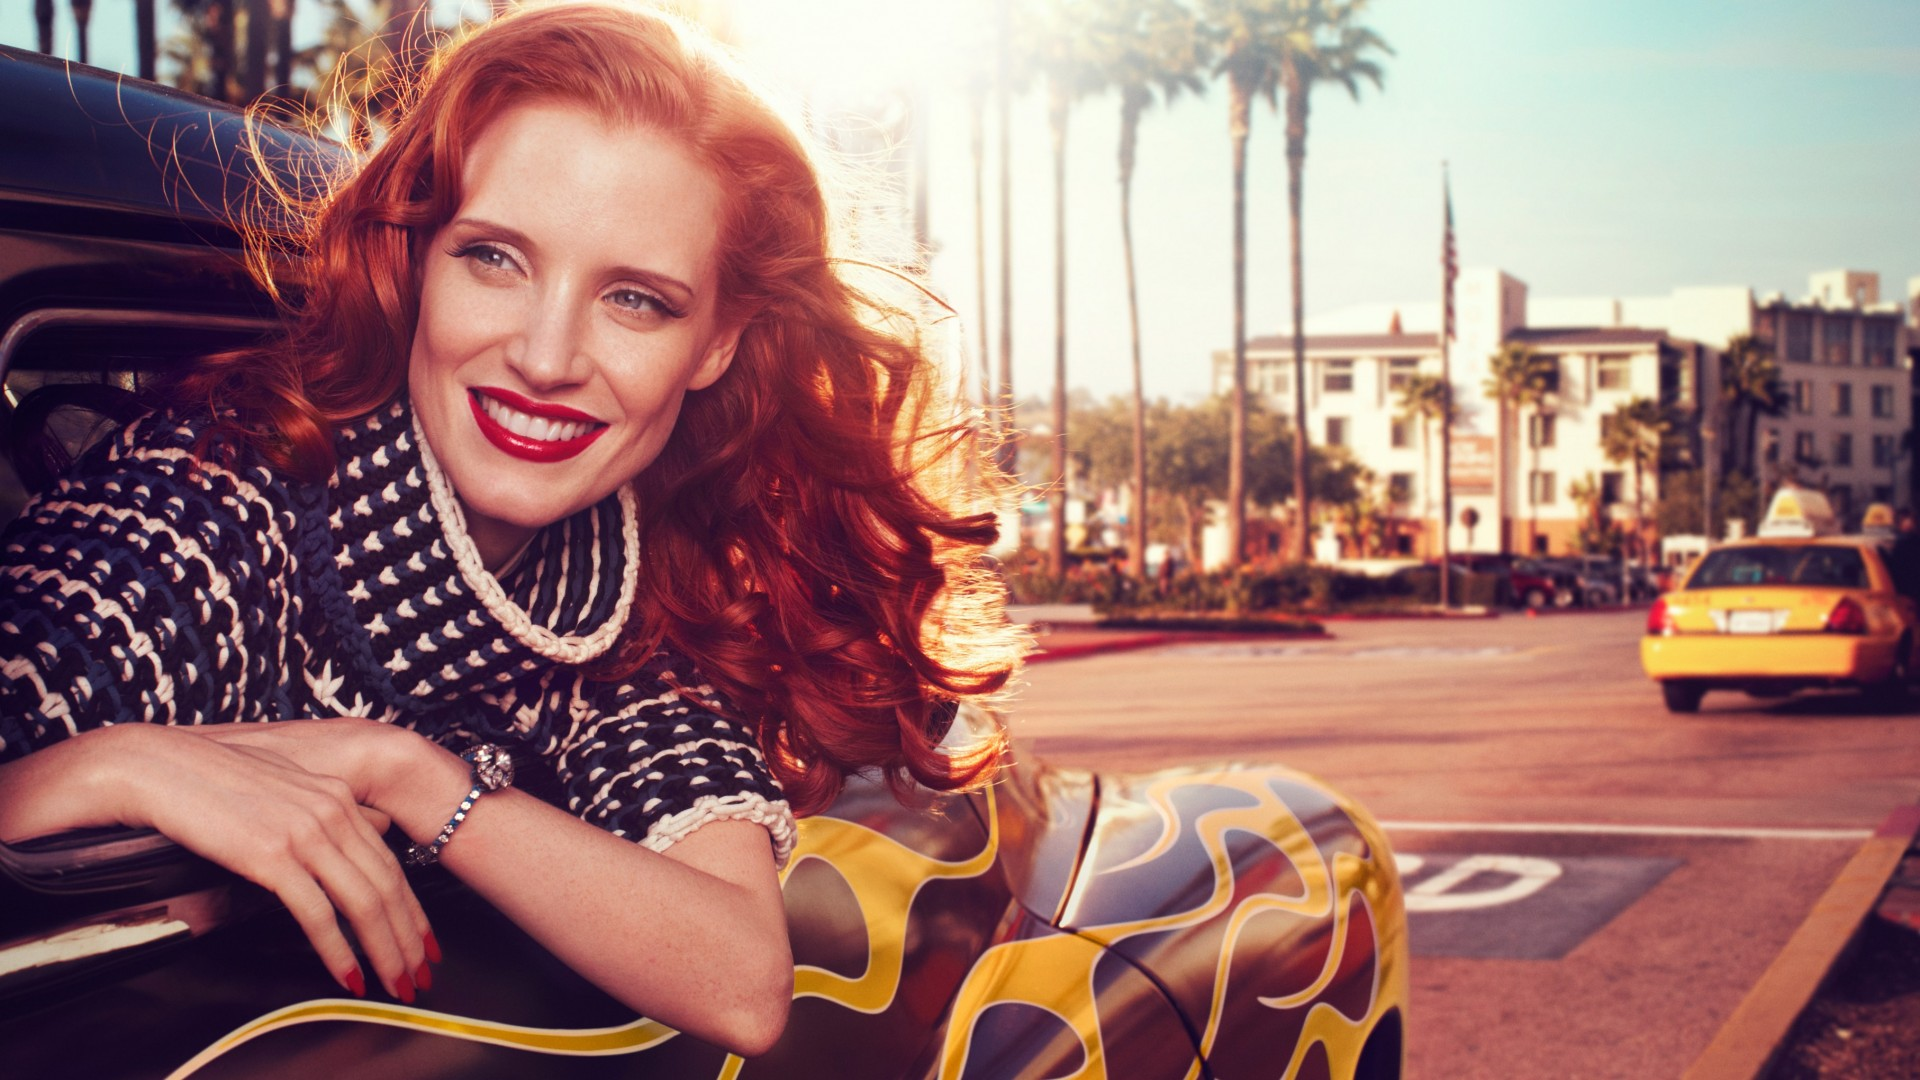 Wallpaper Jessica Chastain, Actress, Television Star, Red